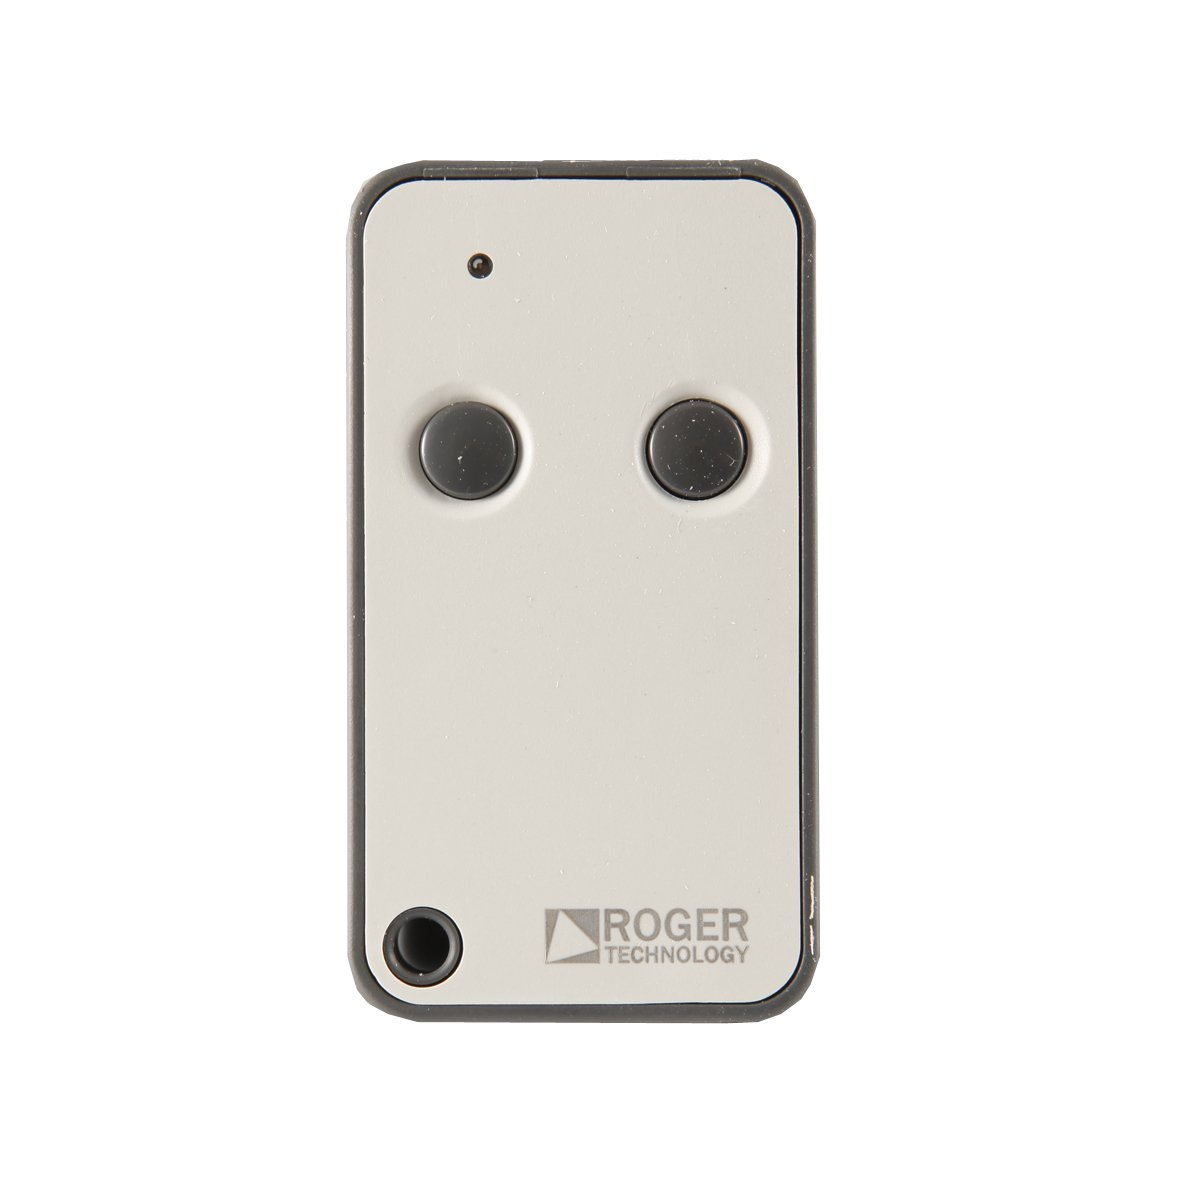 Roger E80-TX52R/2 | Gate and garage door remote